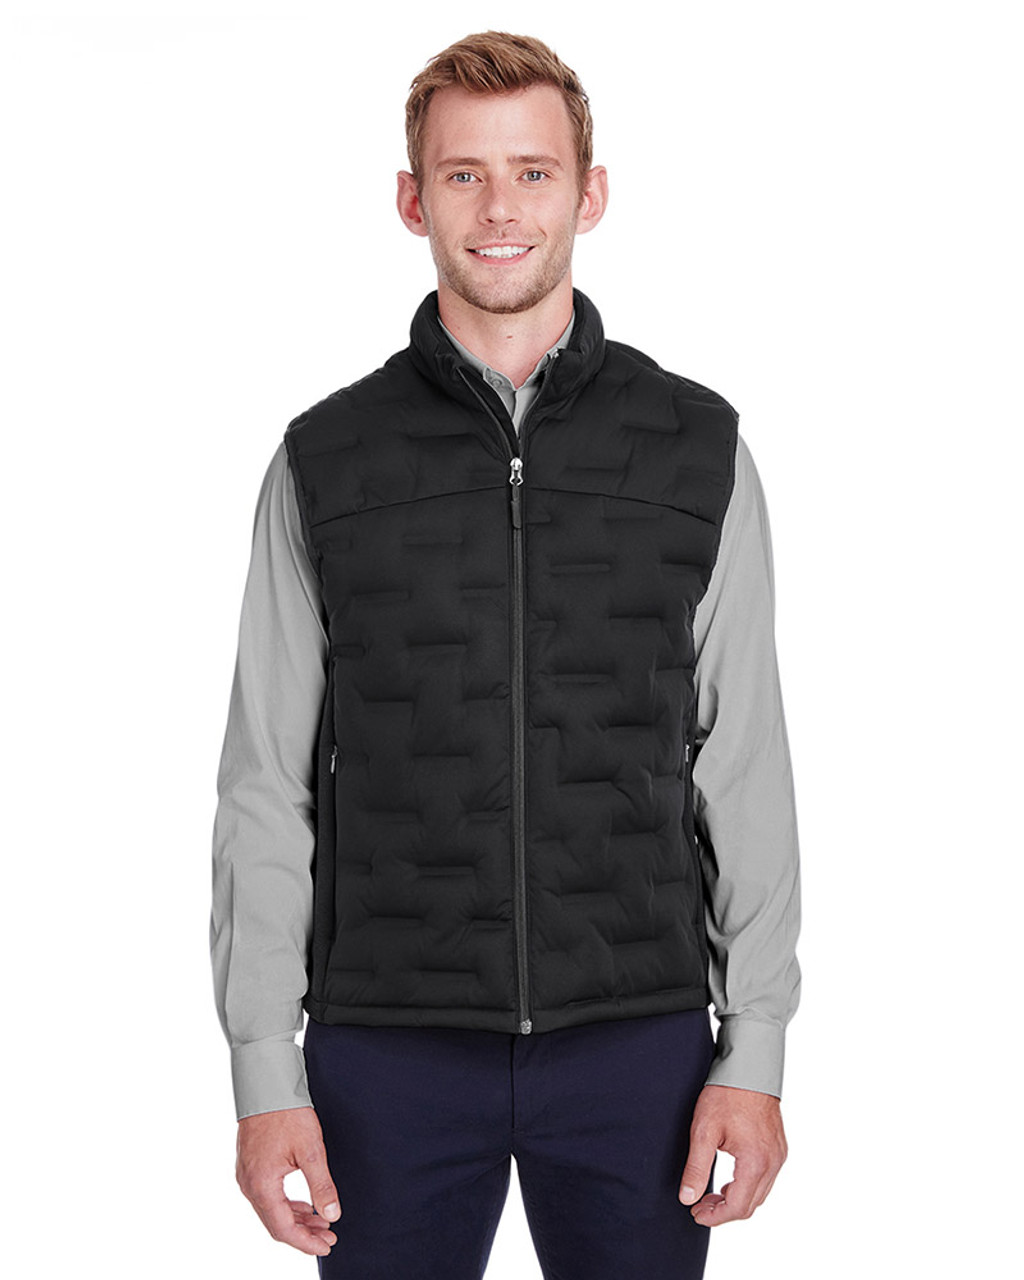 Black/Black/Carbon - NE709 North End Men's Pioneer Hybrid Vest | Blankclothing.ca